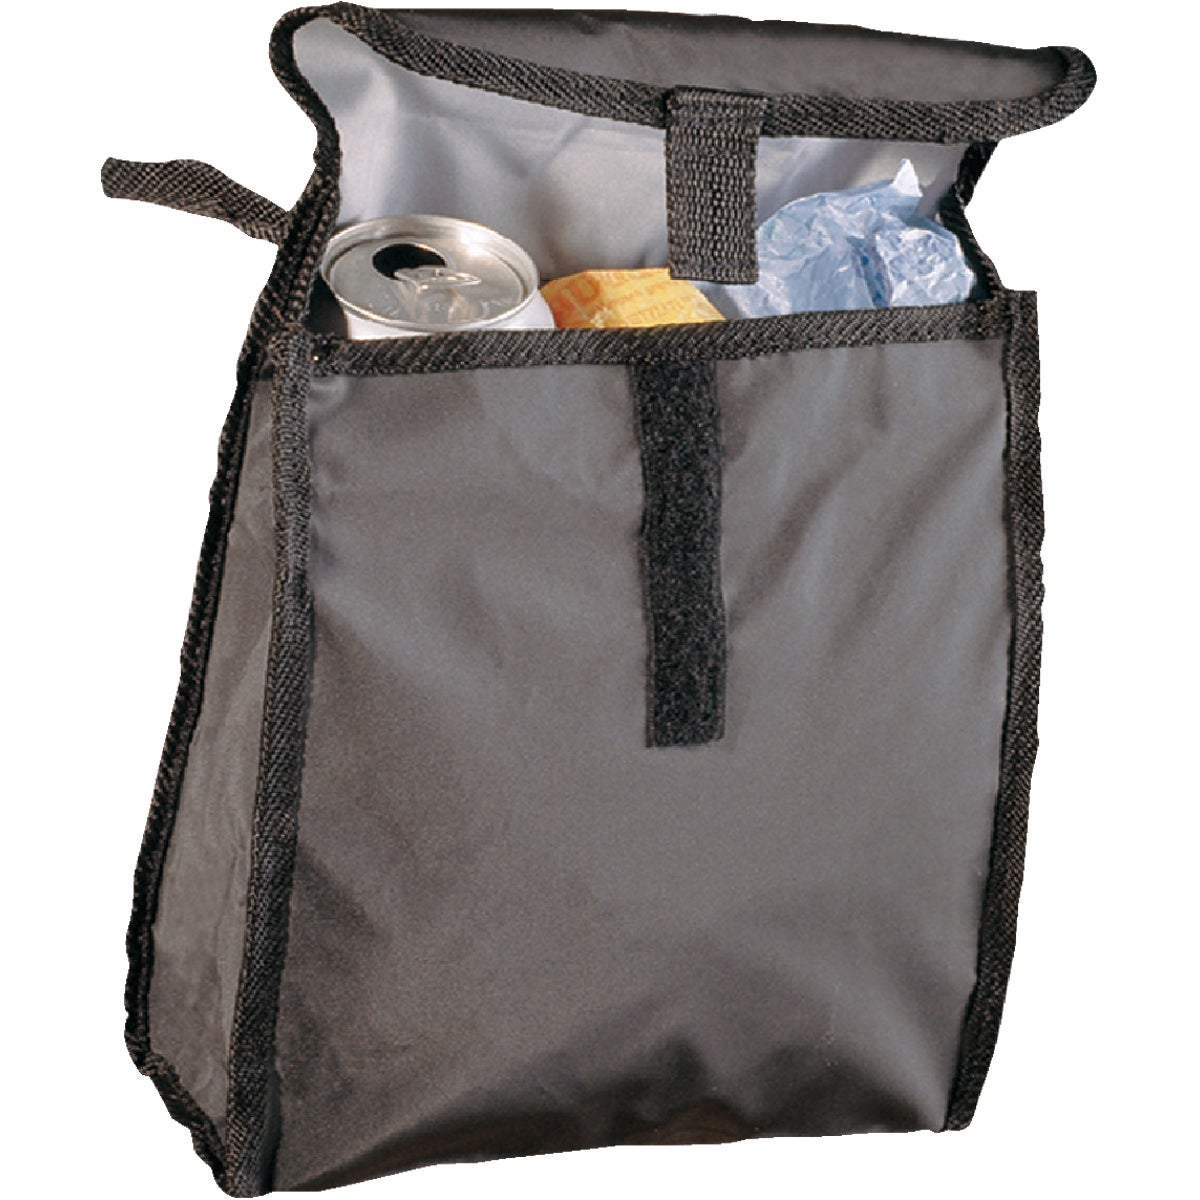 BLACK LITTER BAG - 98211 by Custom Accessories